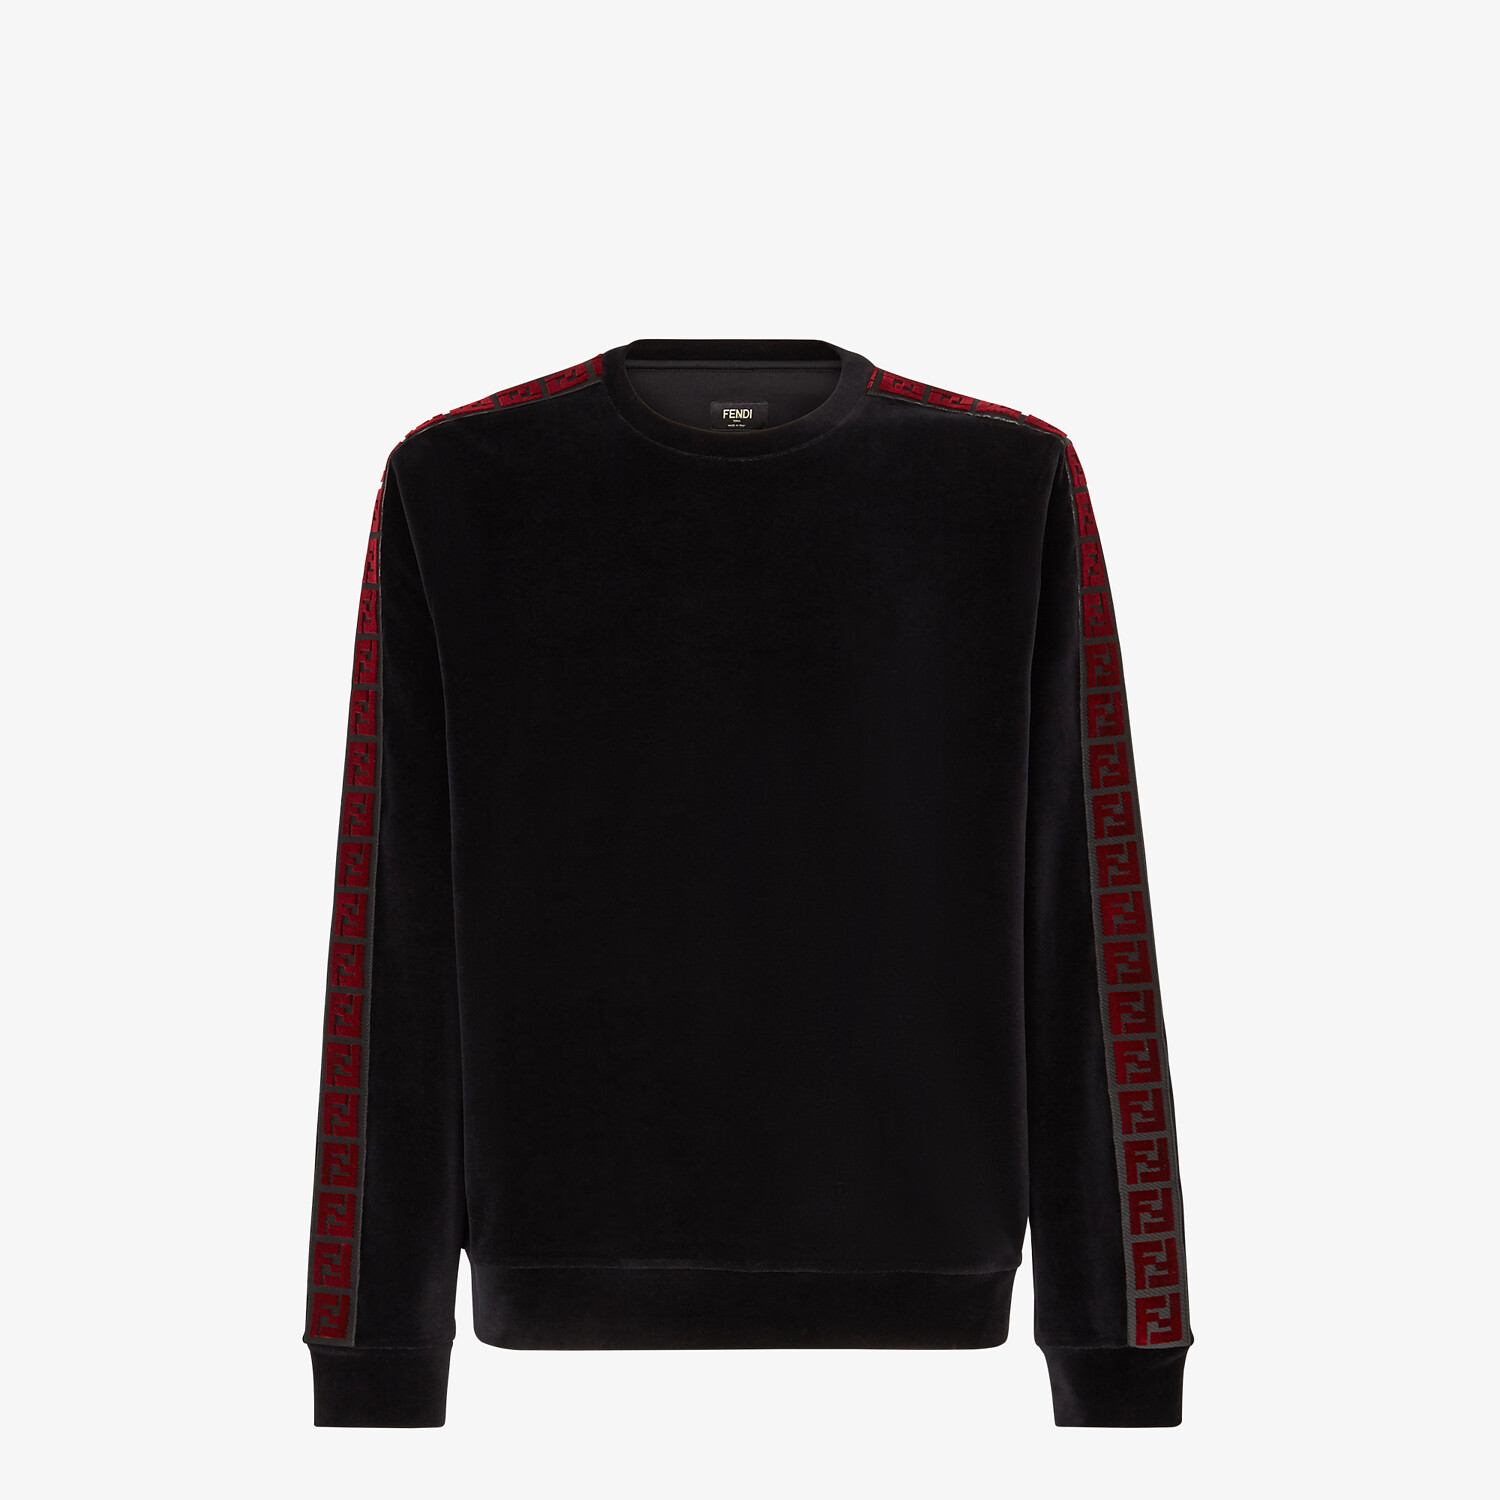 FENDI SWEATSHIRT - Sweatshirt from the Lunar New Year Limited Capsule Collection - view 1 detail